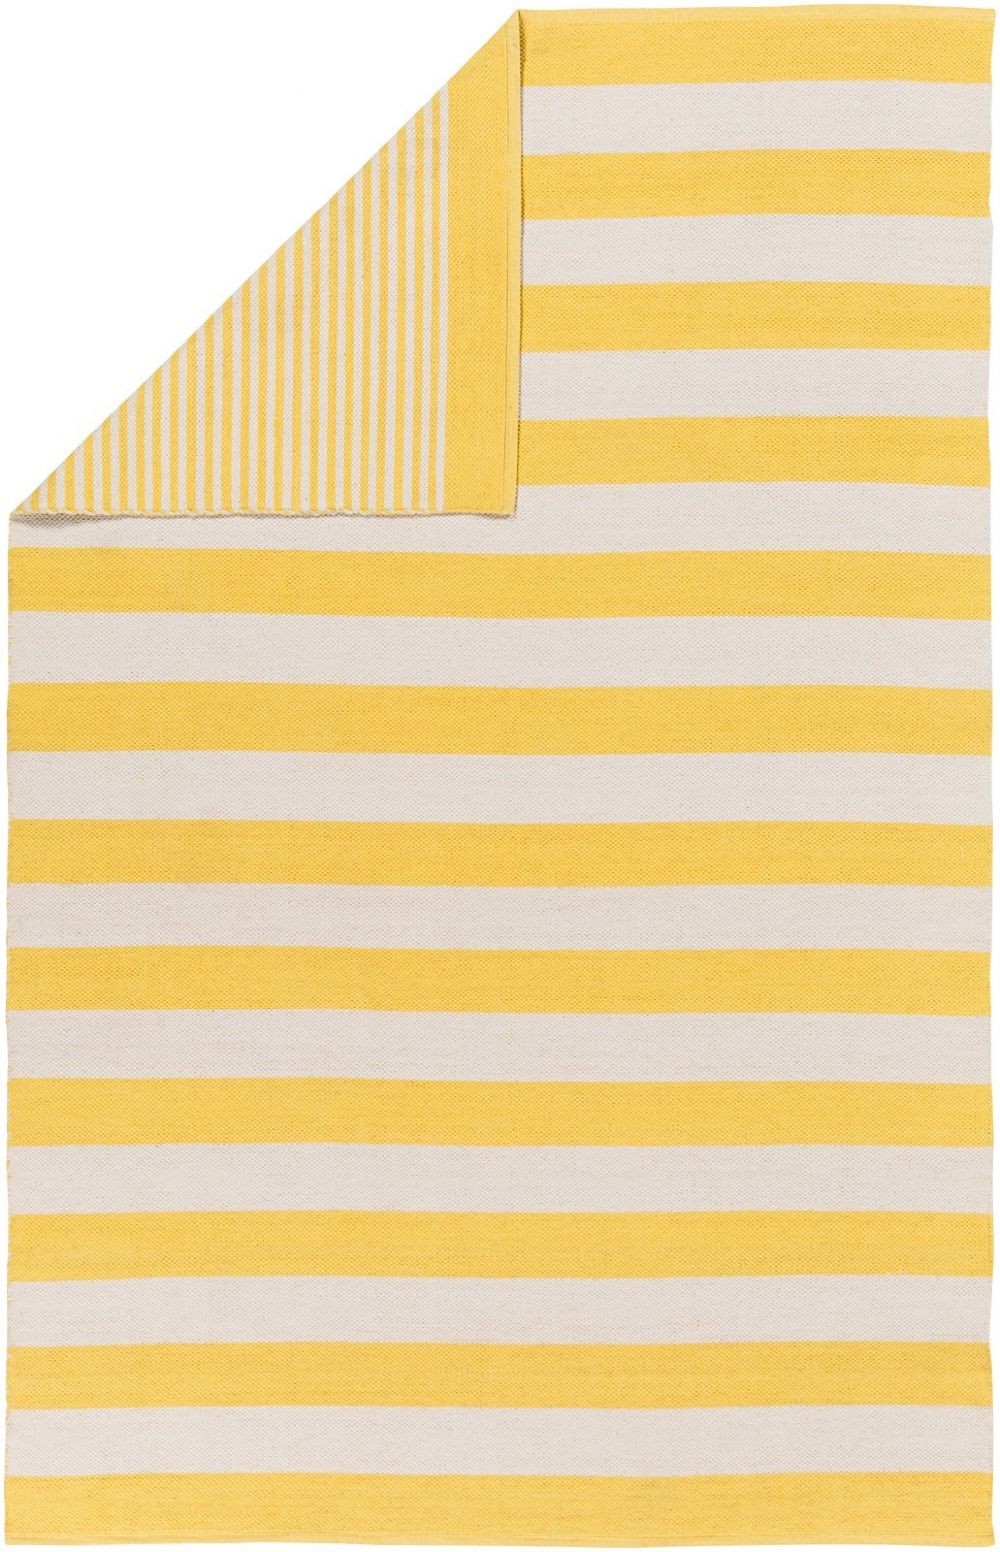 surya newport solid/striped area rug collection